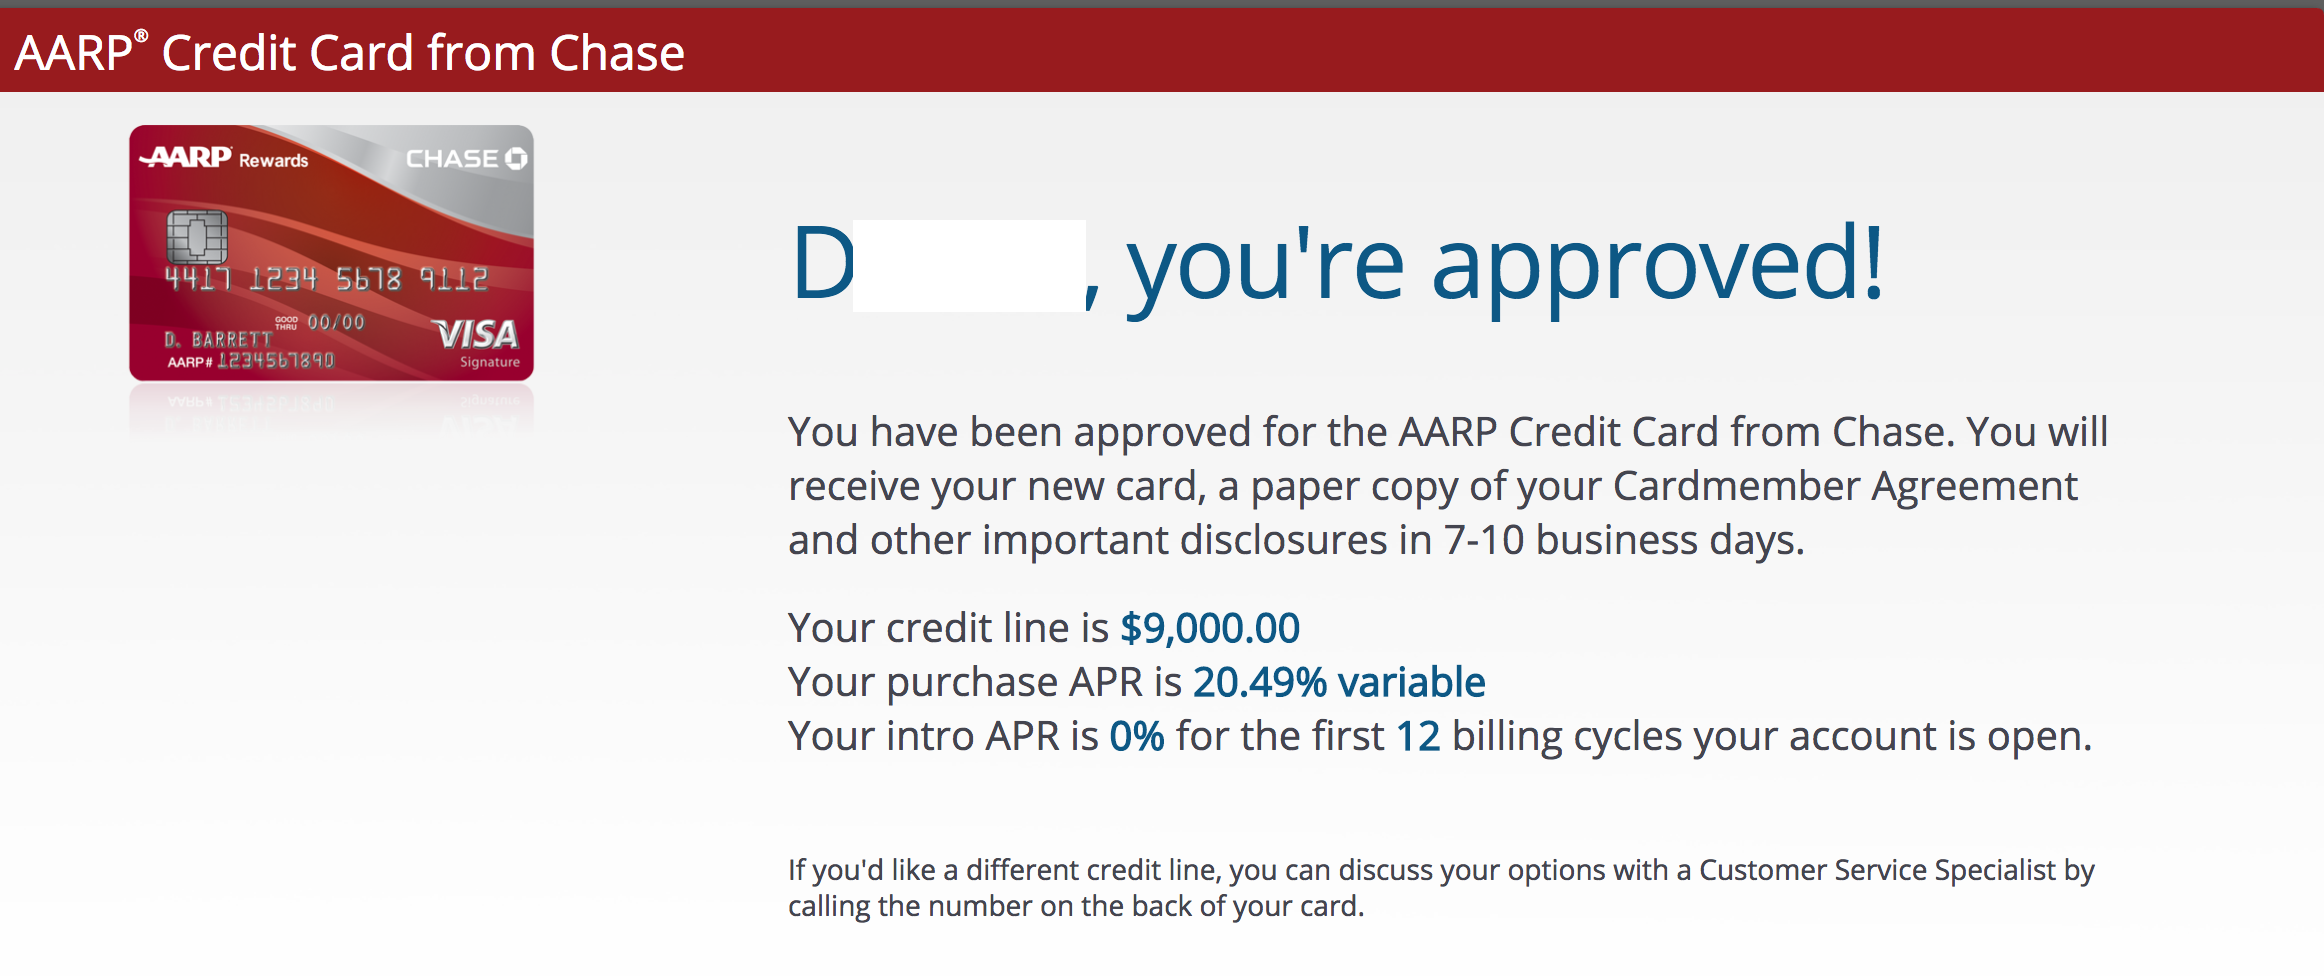 Chase No You Cant Have A CLI But How About A MyFICO - Invoice word doc online store credit cards guaranteed approval